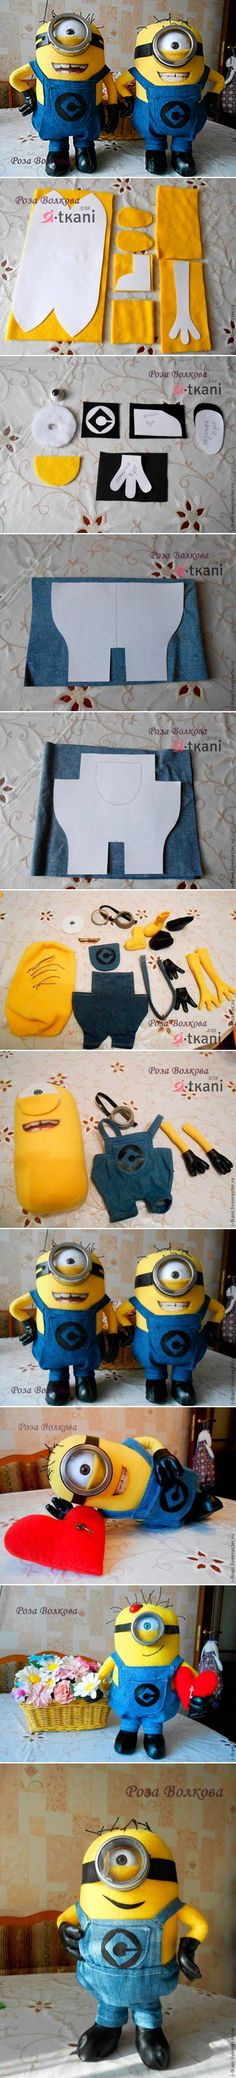 DIY Minion Dolls see written instructions at http://www.livemaster.ru/topic/428177-minen-iz-flisa